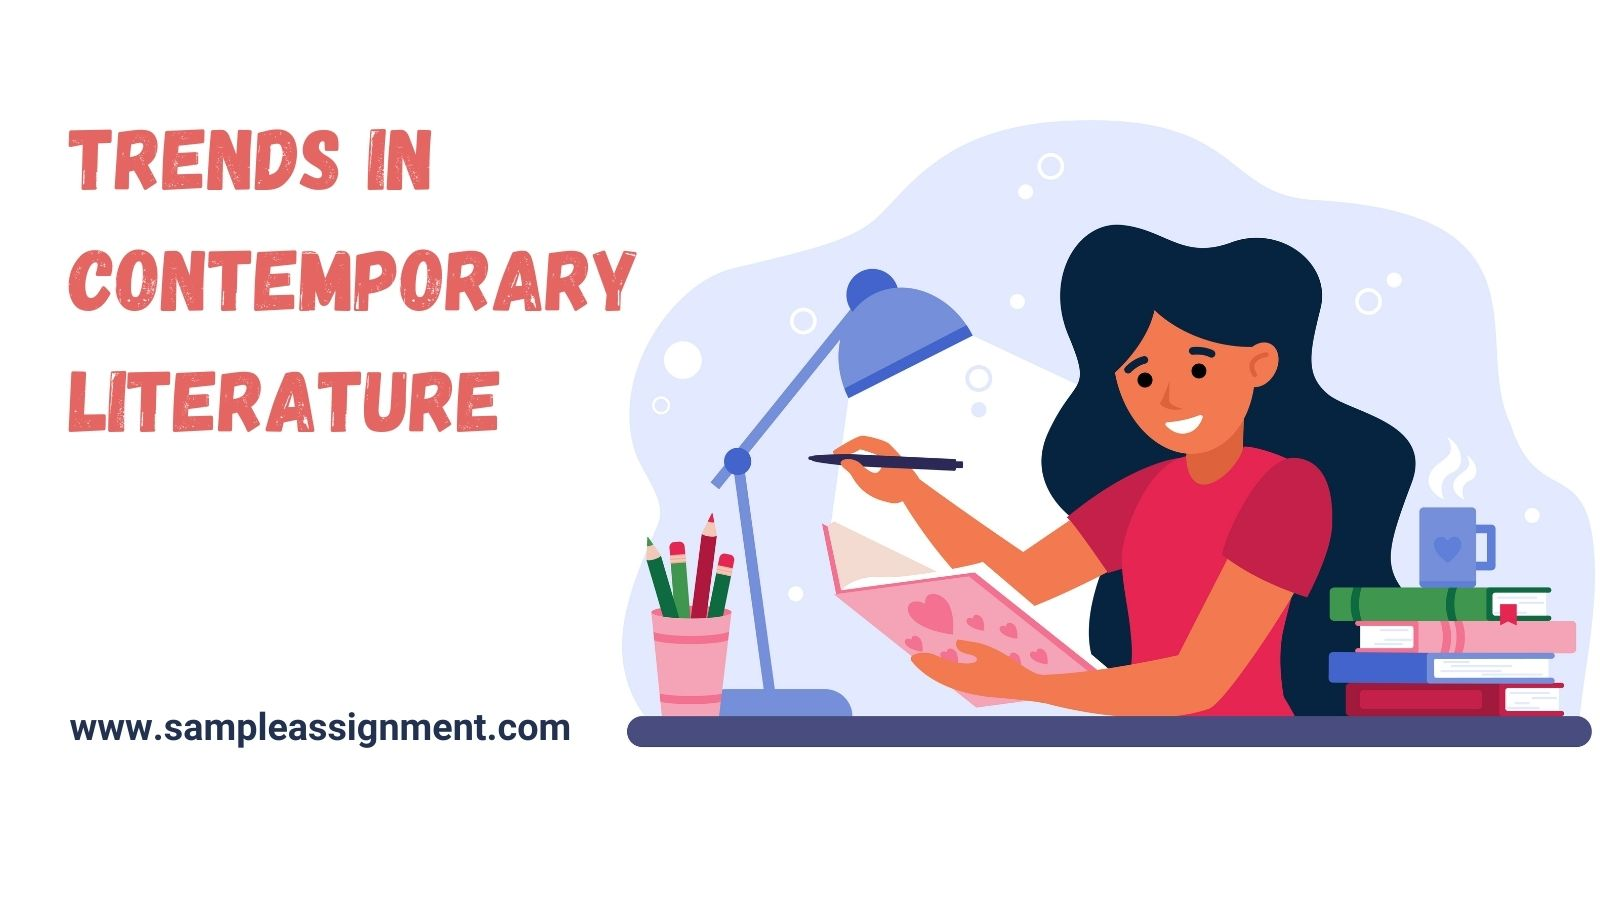 What Are The Trends In Contemporary Literature